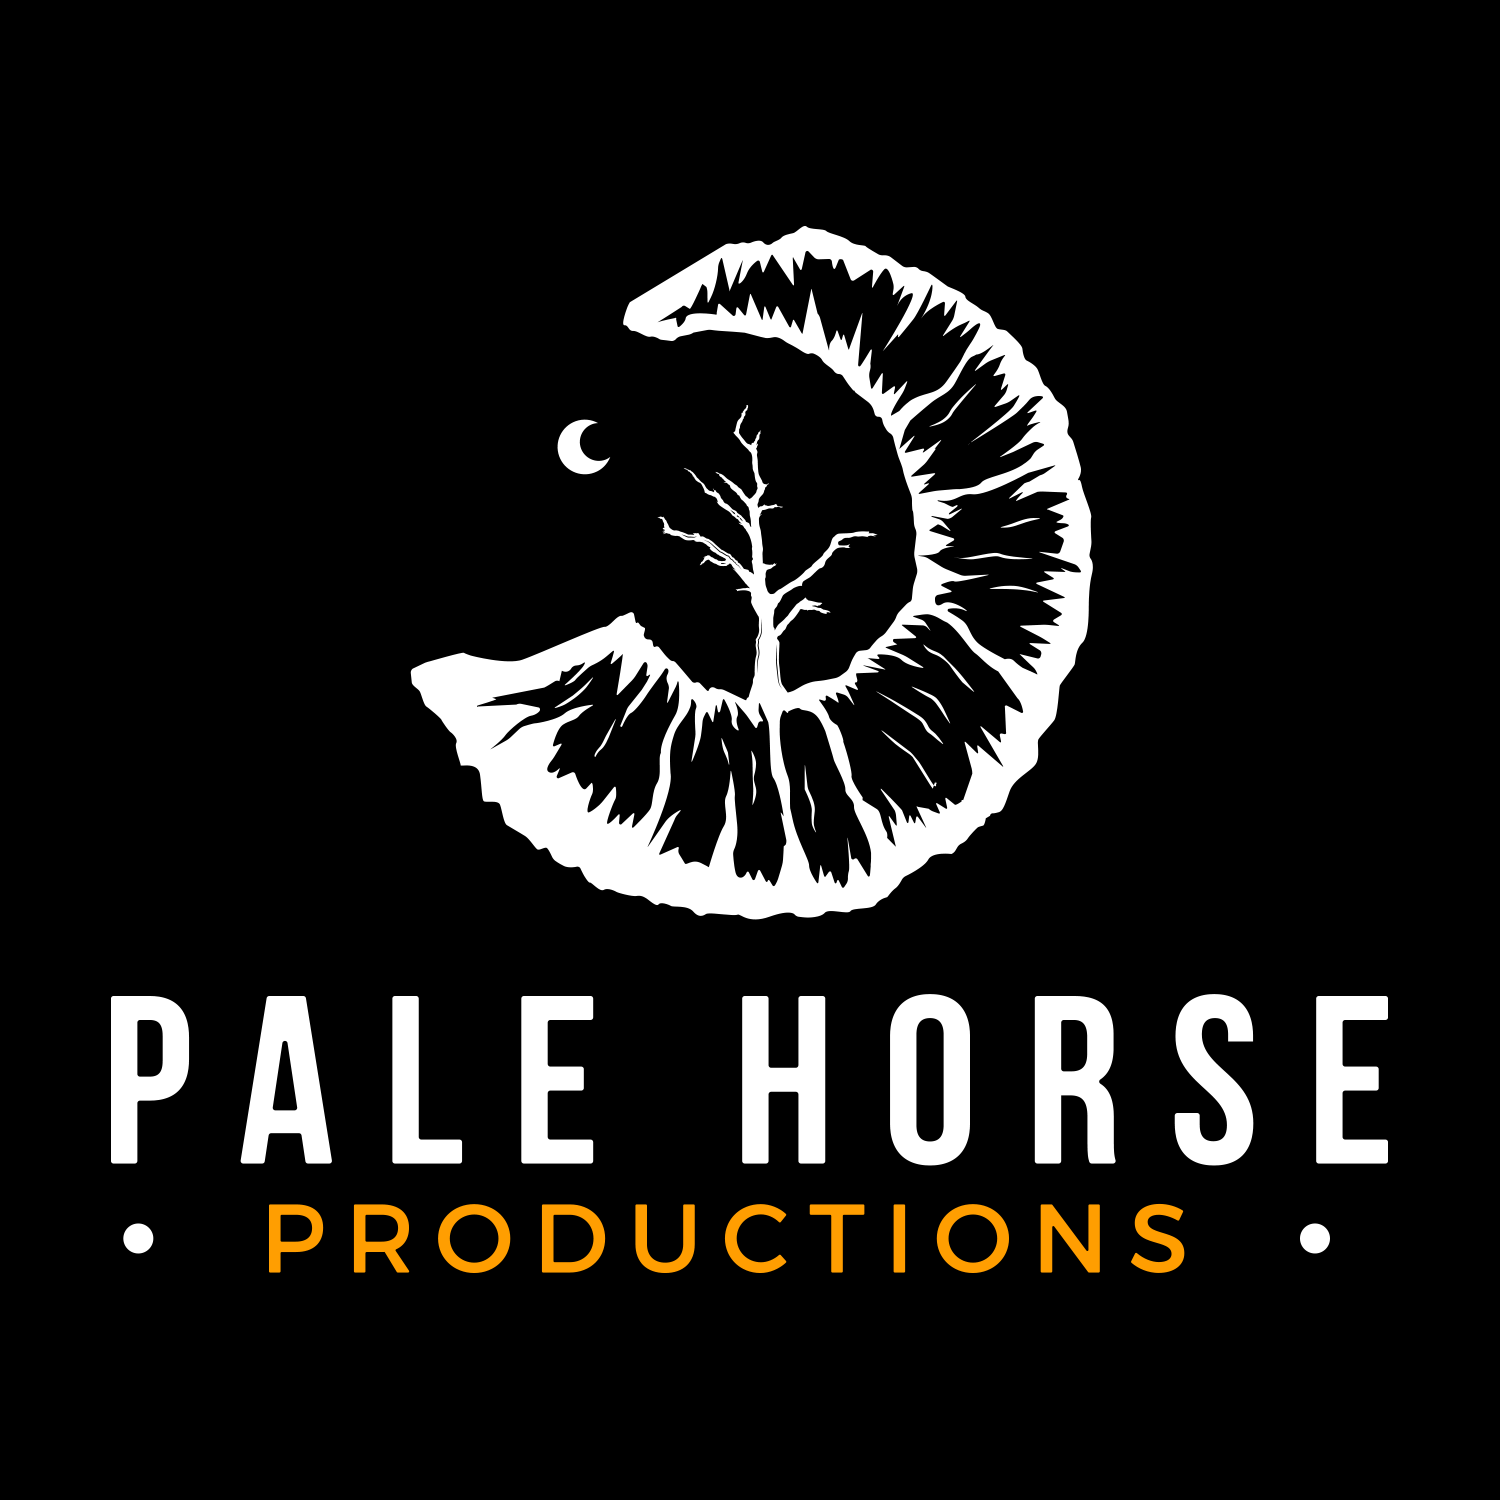 Pale Horse Productions